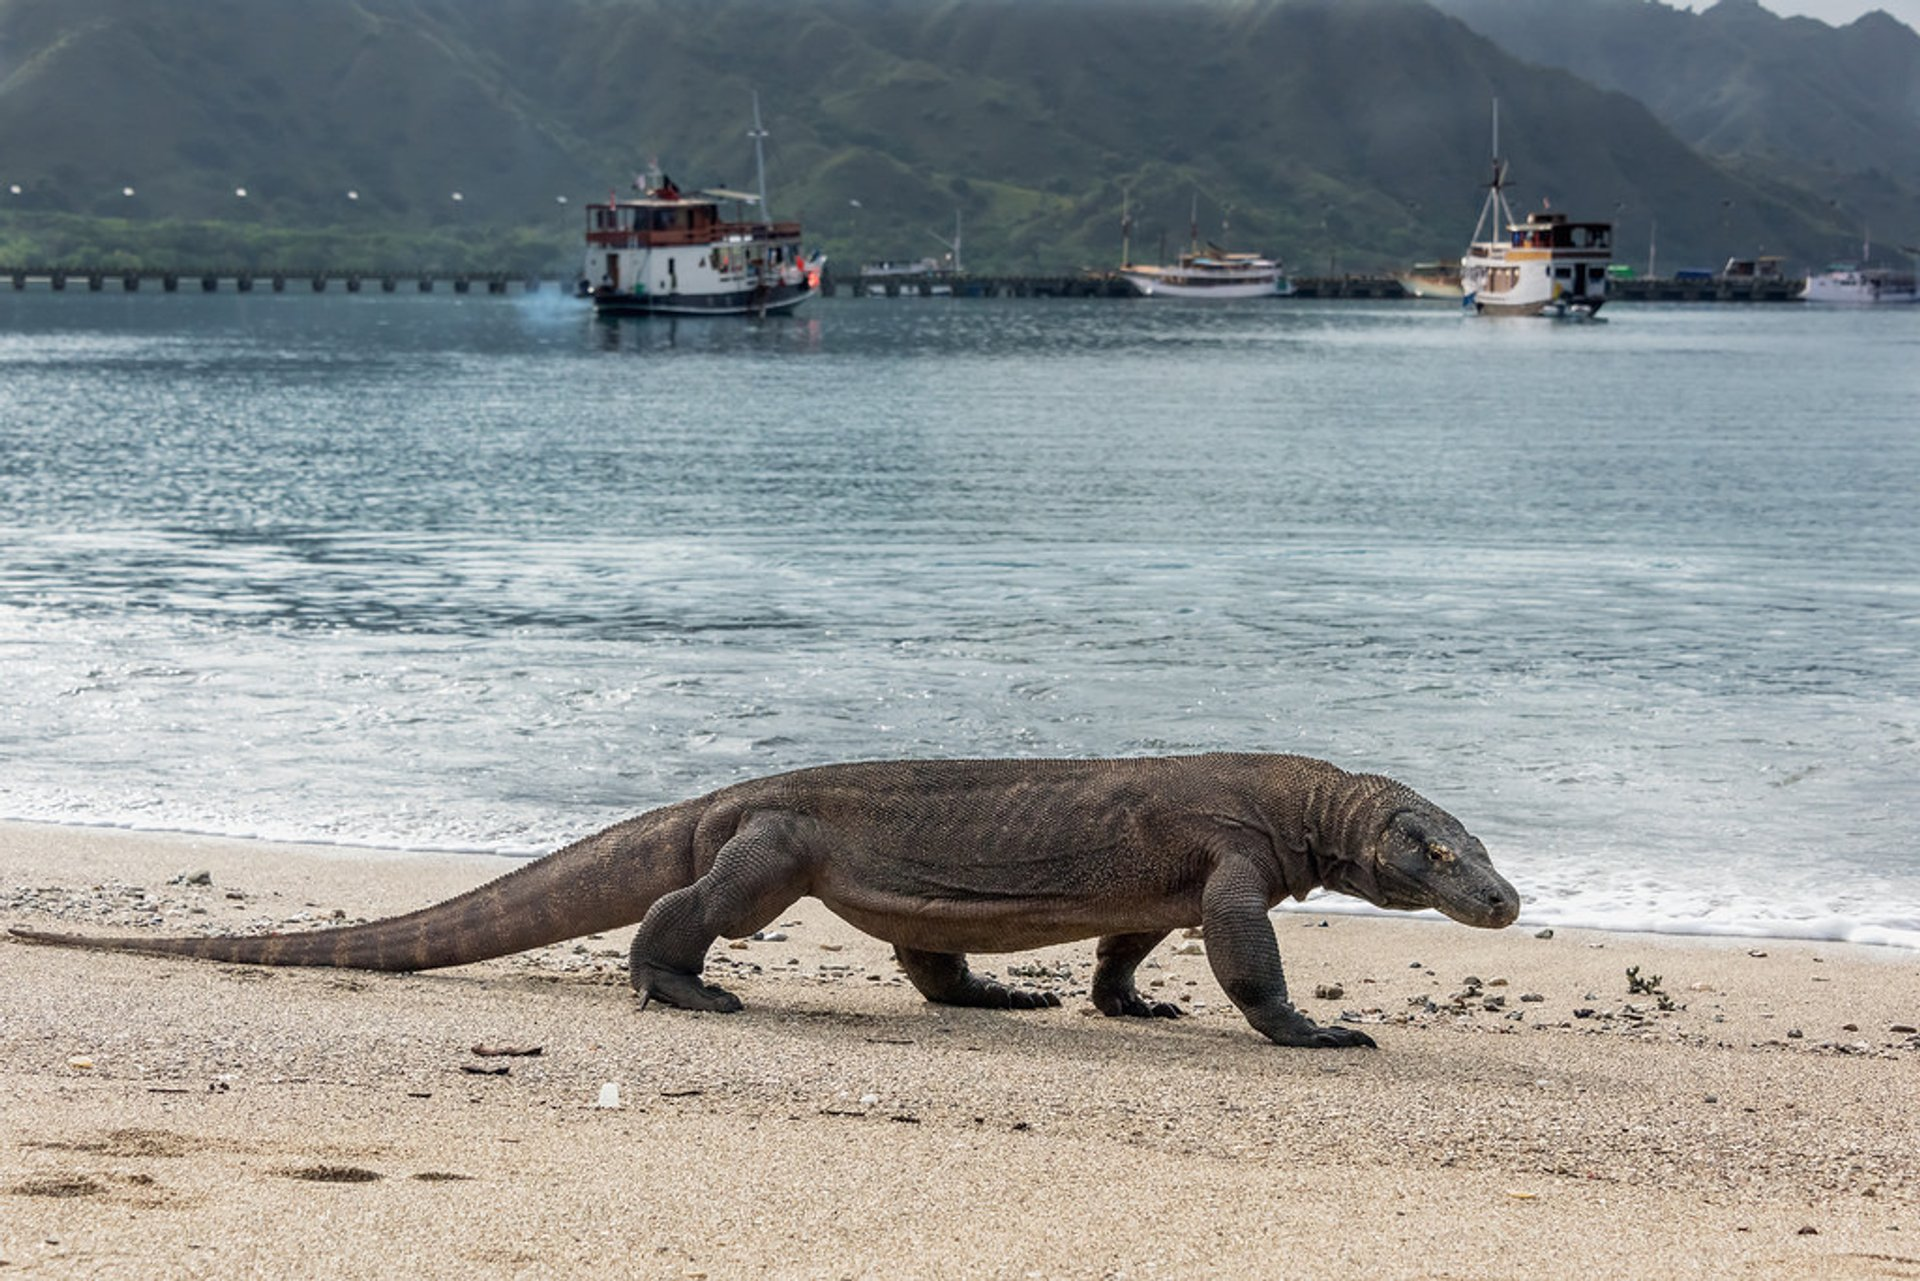 Best time for Komodo Dragons in Indonesia 2020